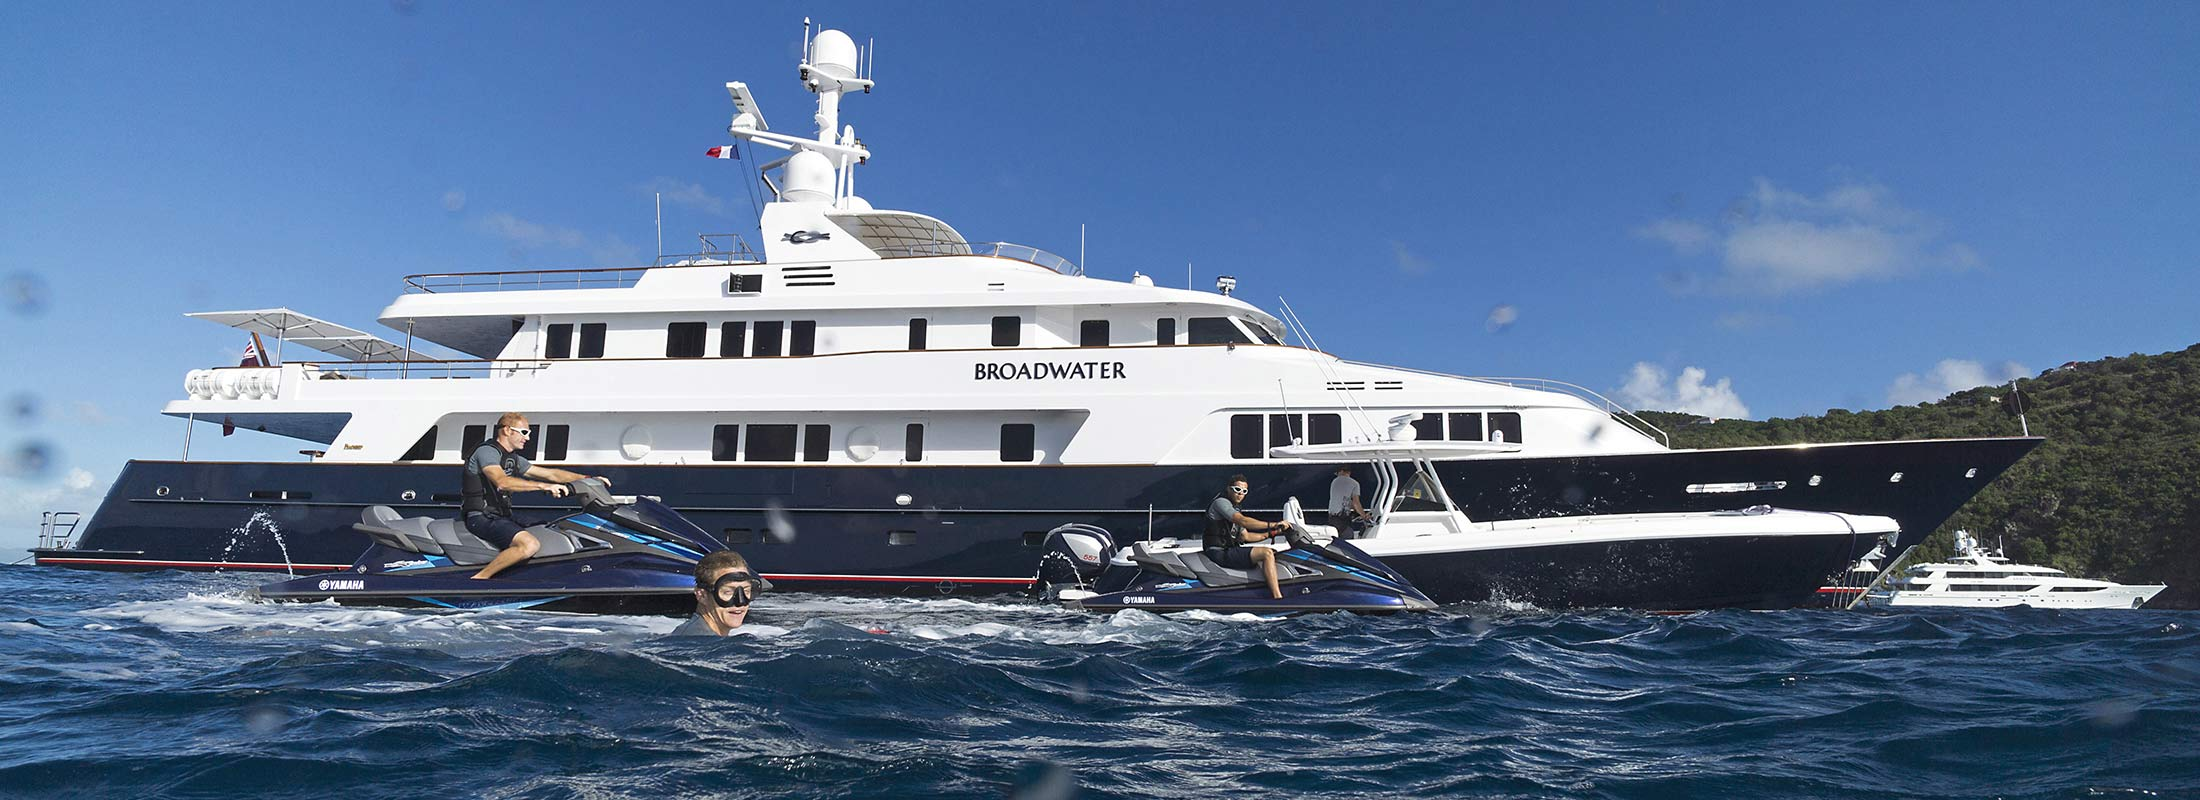 Broadwater Motor Yacht for Charter Mediterranean Caribbean Sea slider 2